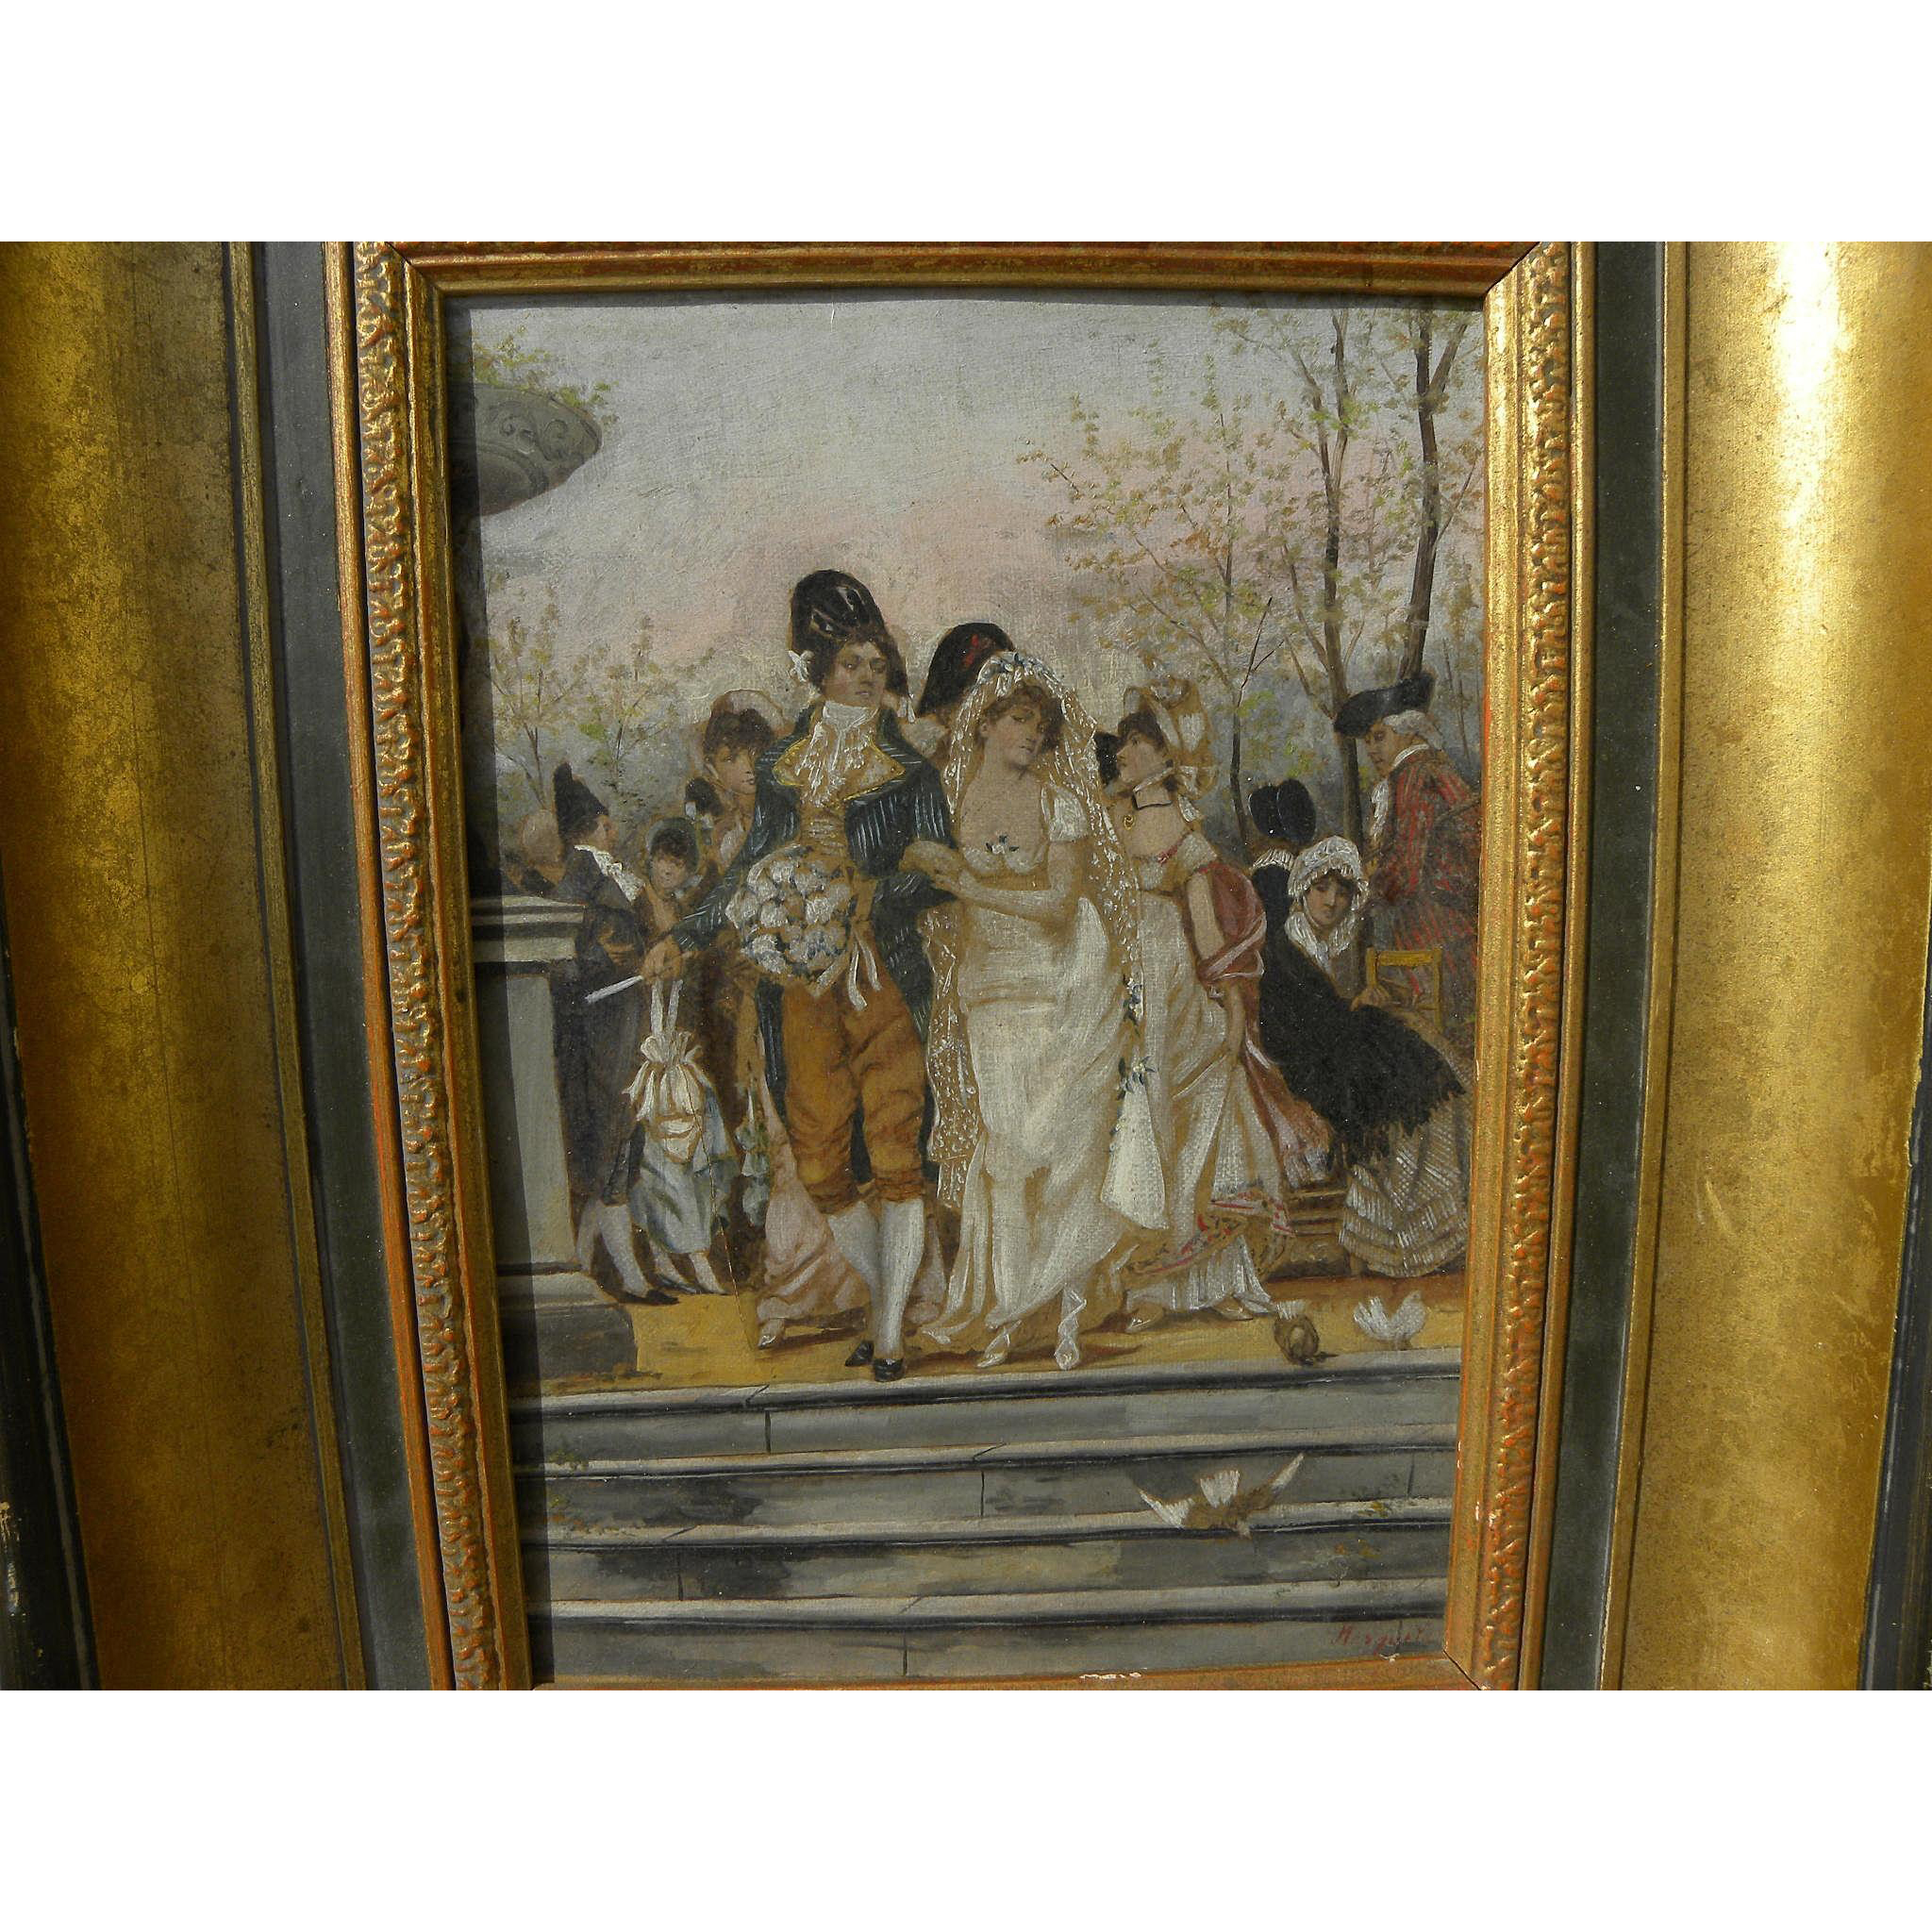 19th century European hand coloring over photographic print decorative work appearing as painting